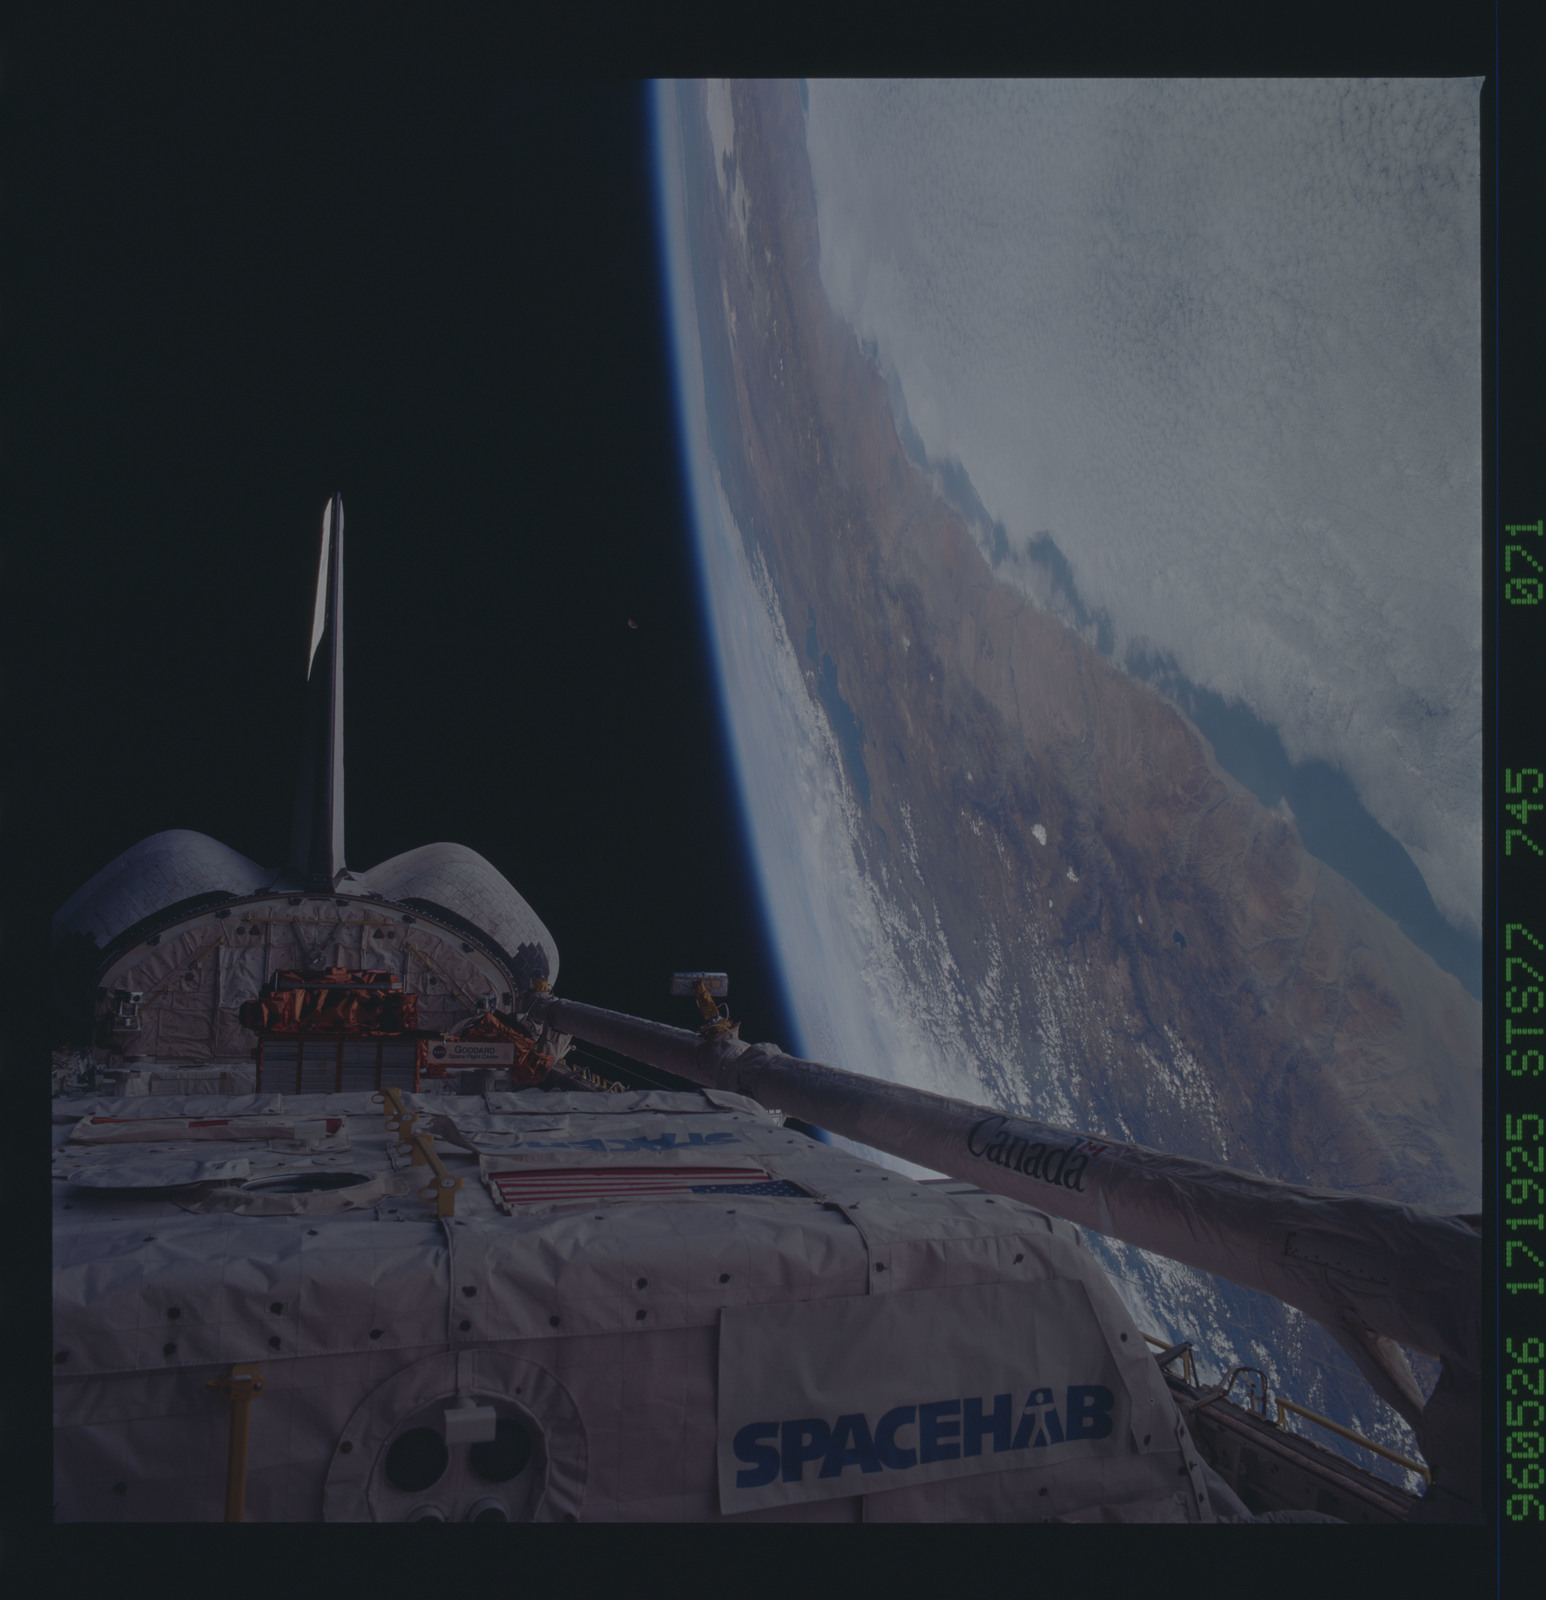 STS077-745-071 - STS-077 - View of the Endeavour's payload bay